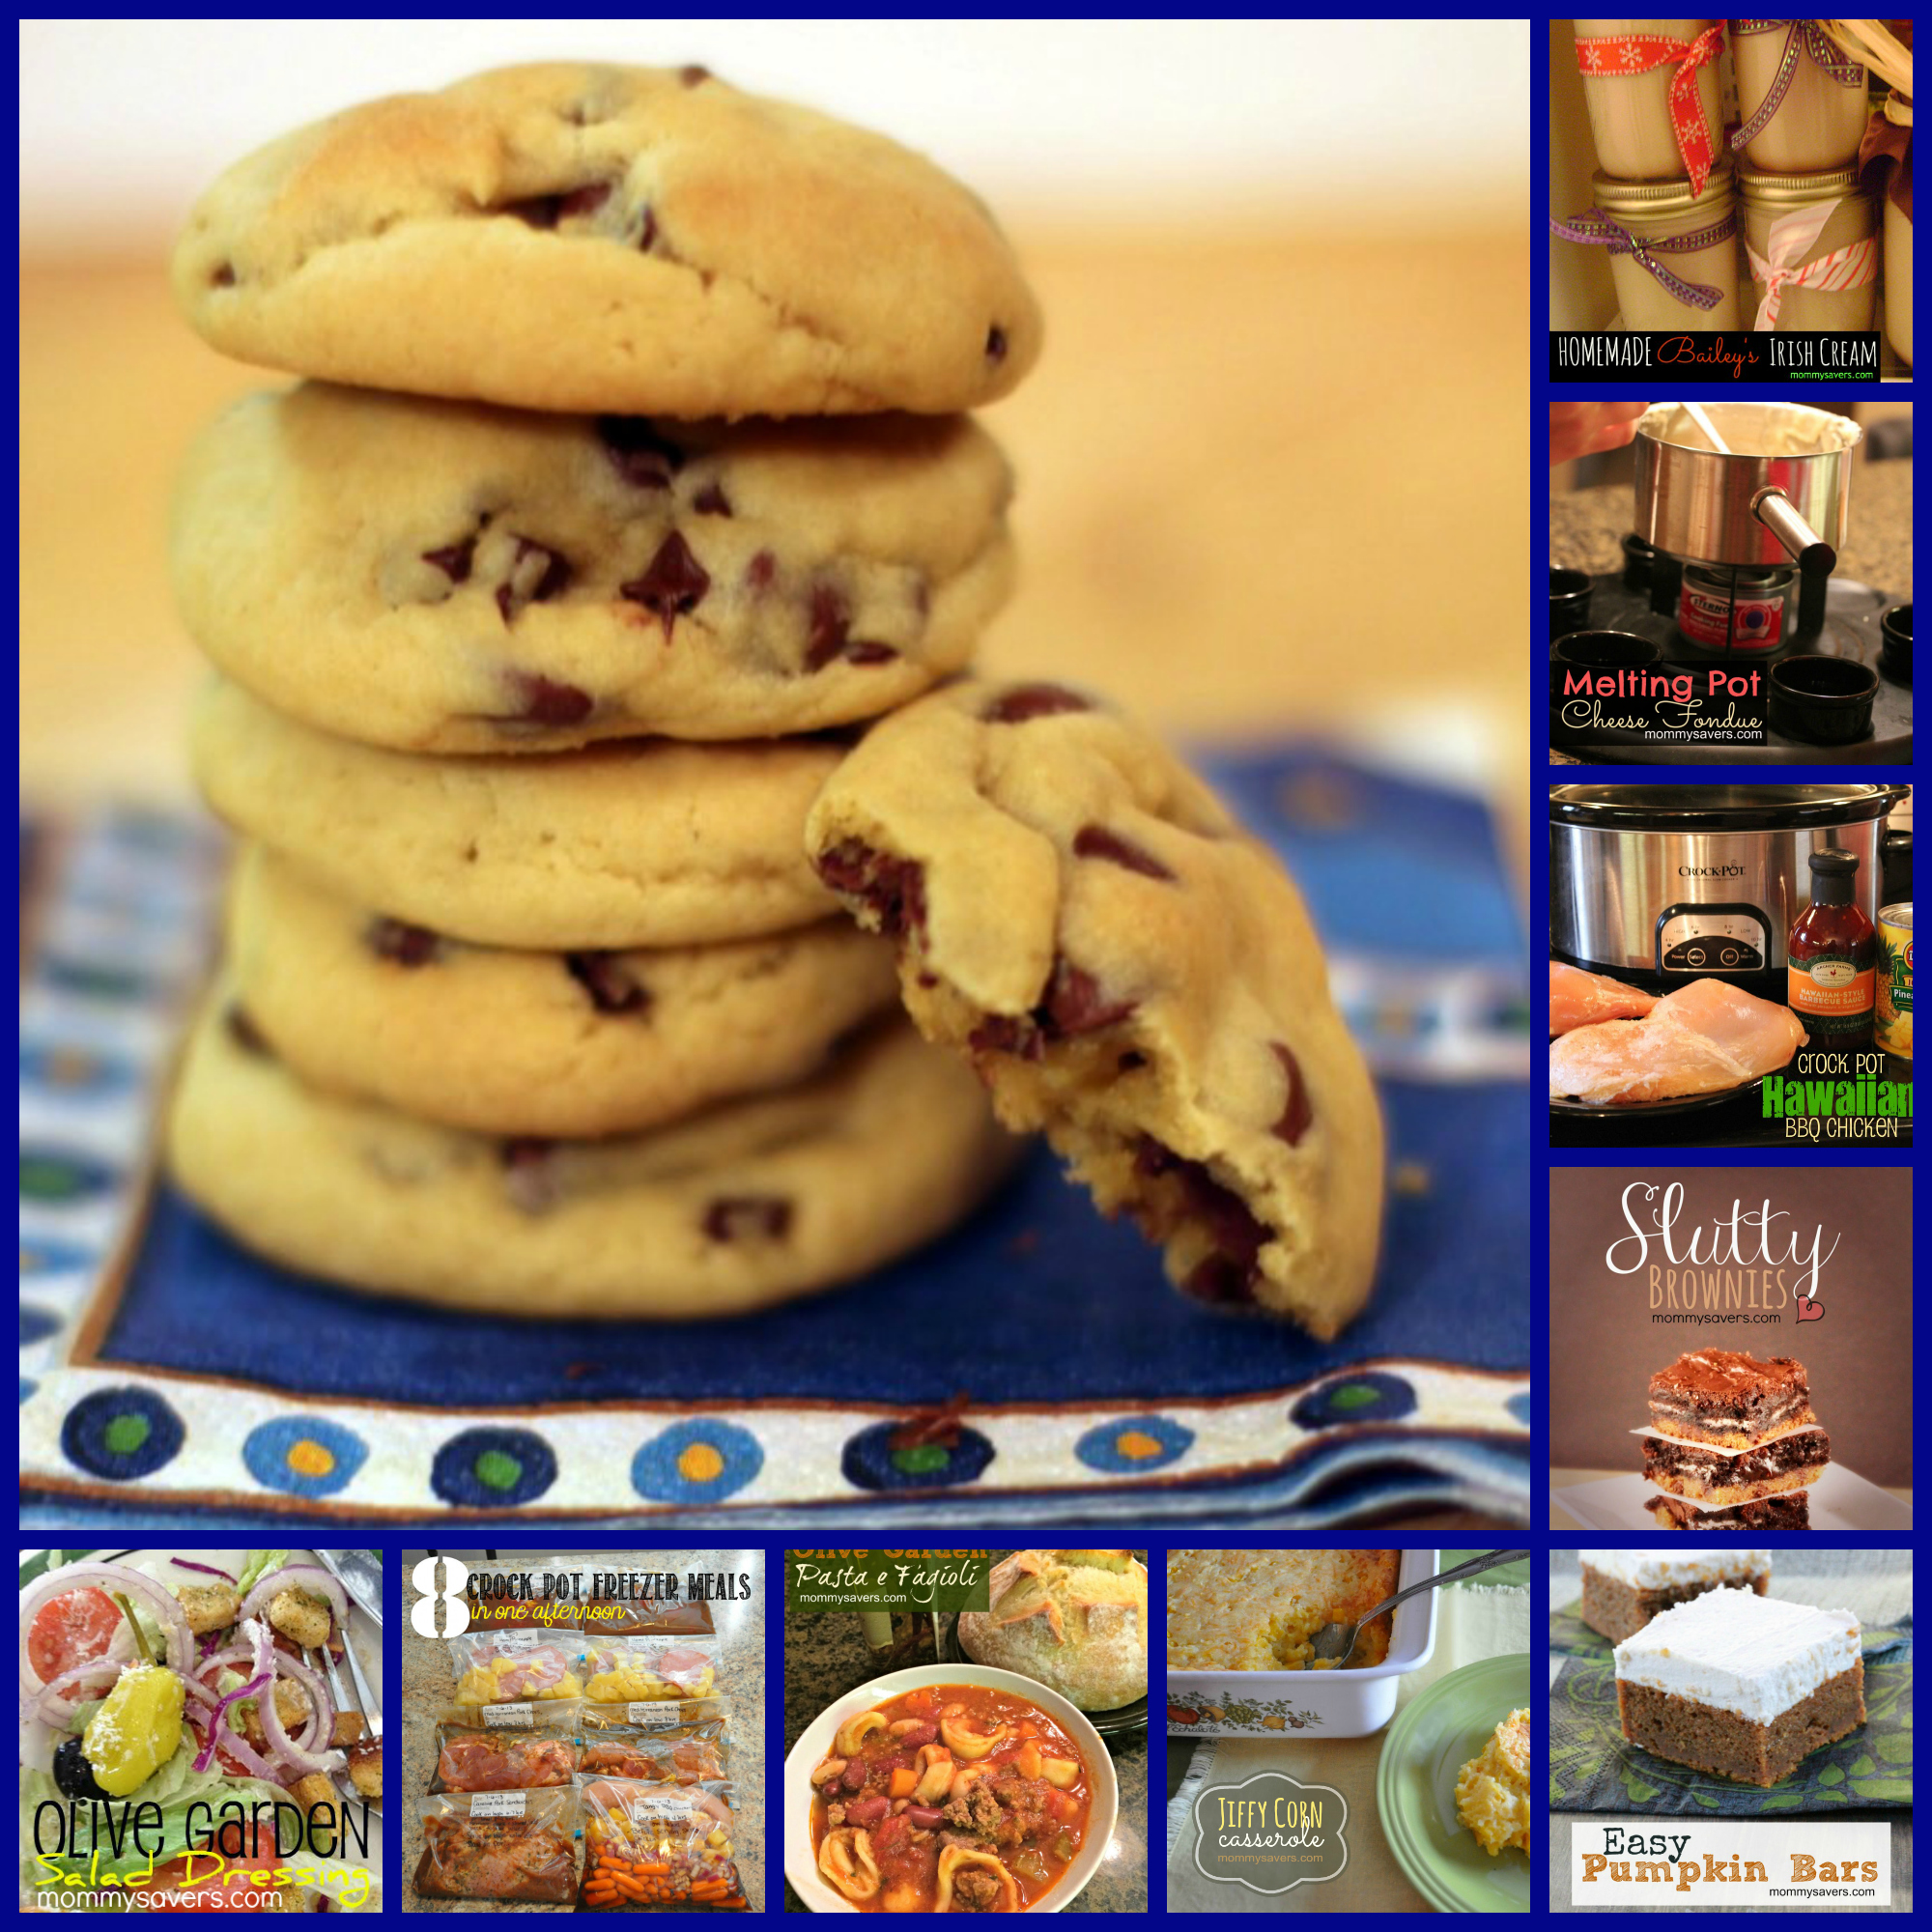 Top 10 Mommysavers.com Recipes from 2013